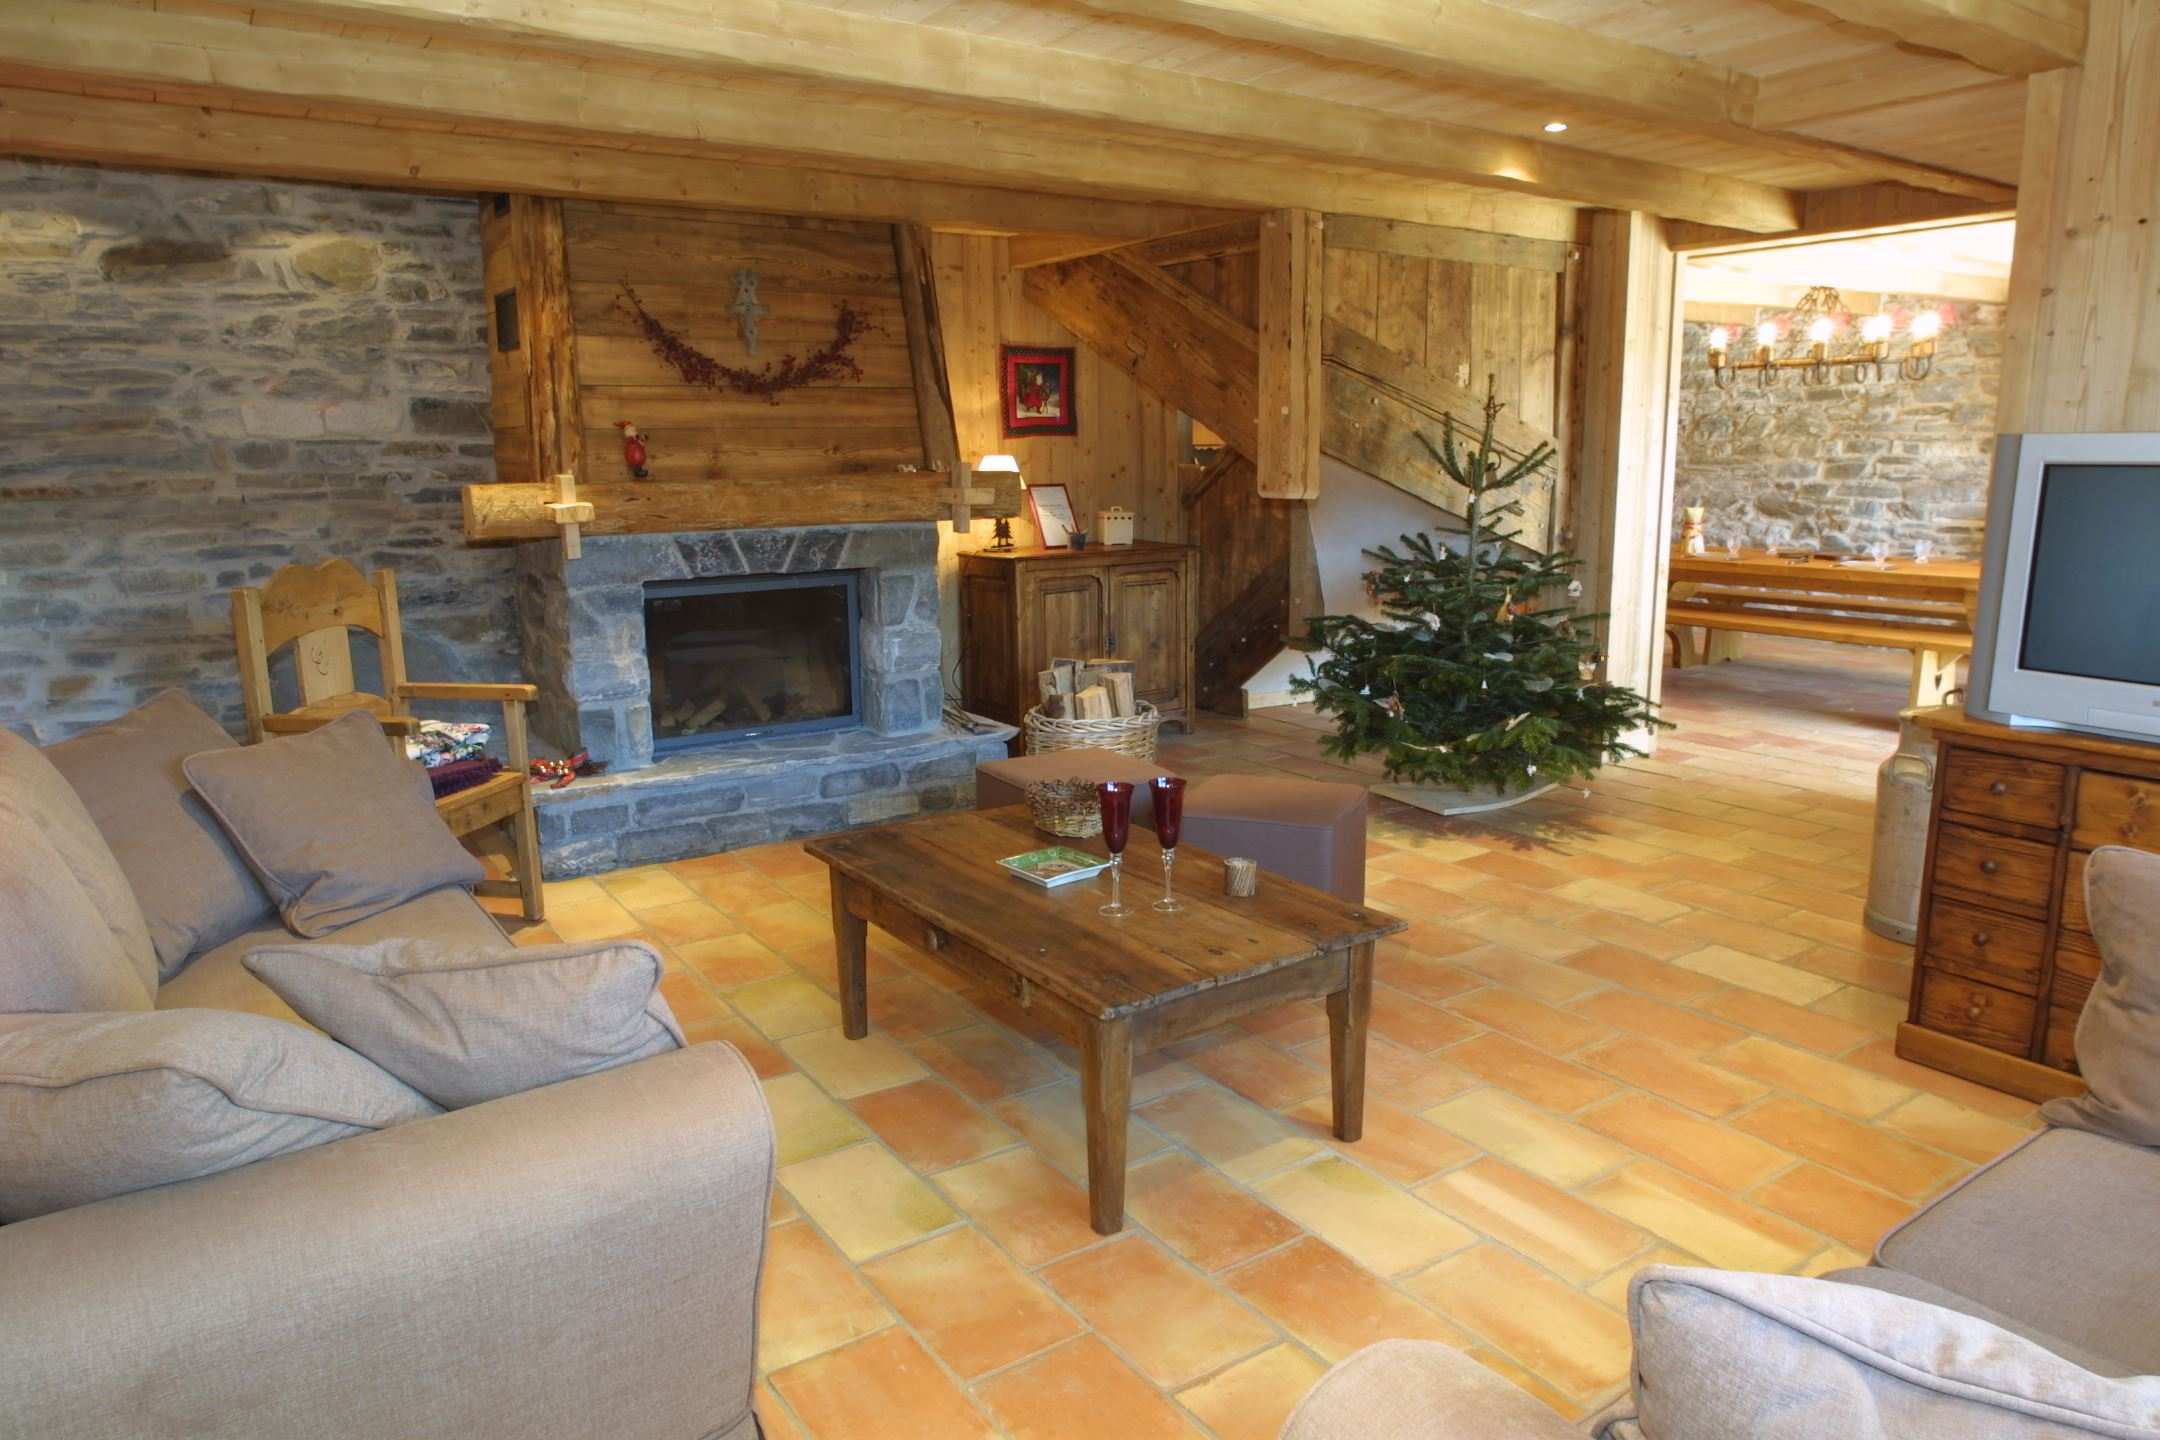 Reine des Neiges n°4 - 5 rooms ****- 10 people - 142 m²